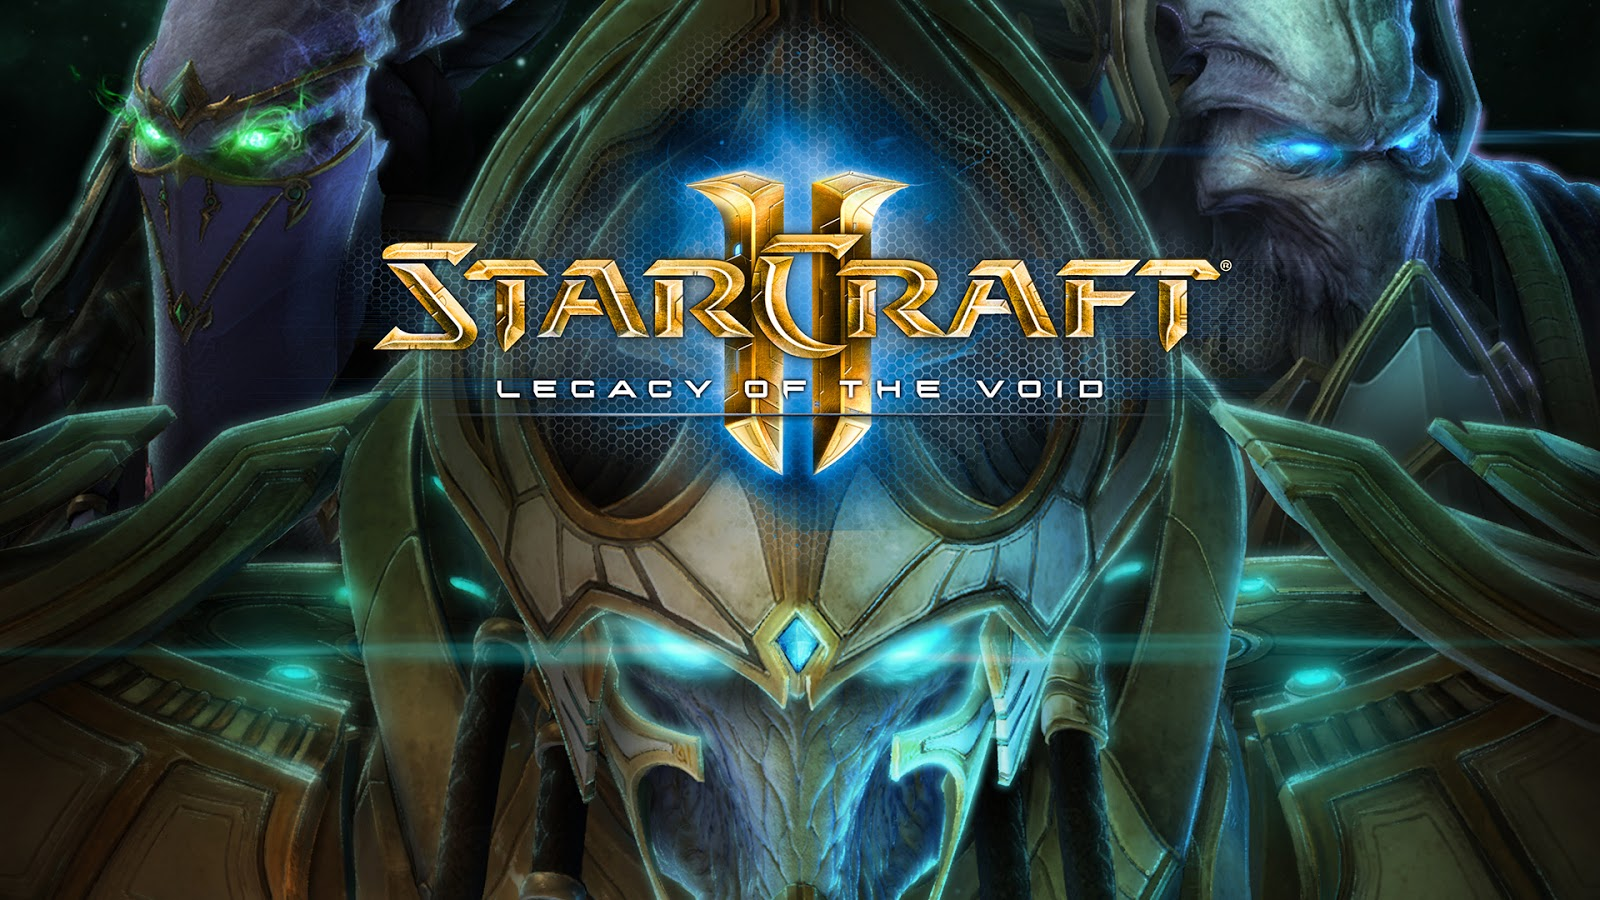 Legacy Of The Void Wallpapers: HD Wallpapers : Starcraft 2 Legacy Of The Void Hd Wallpapers